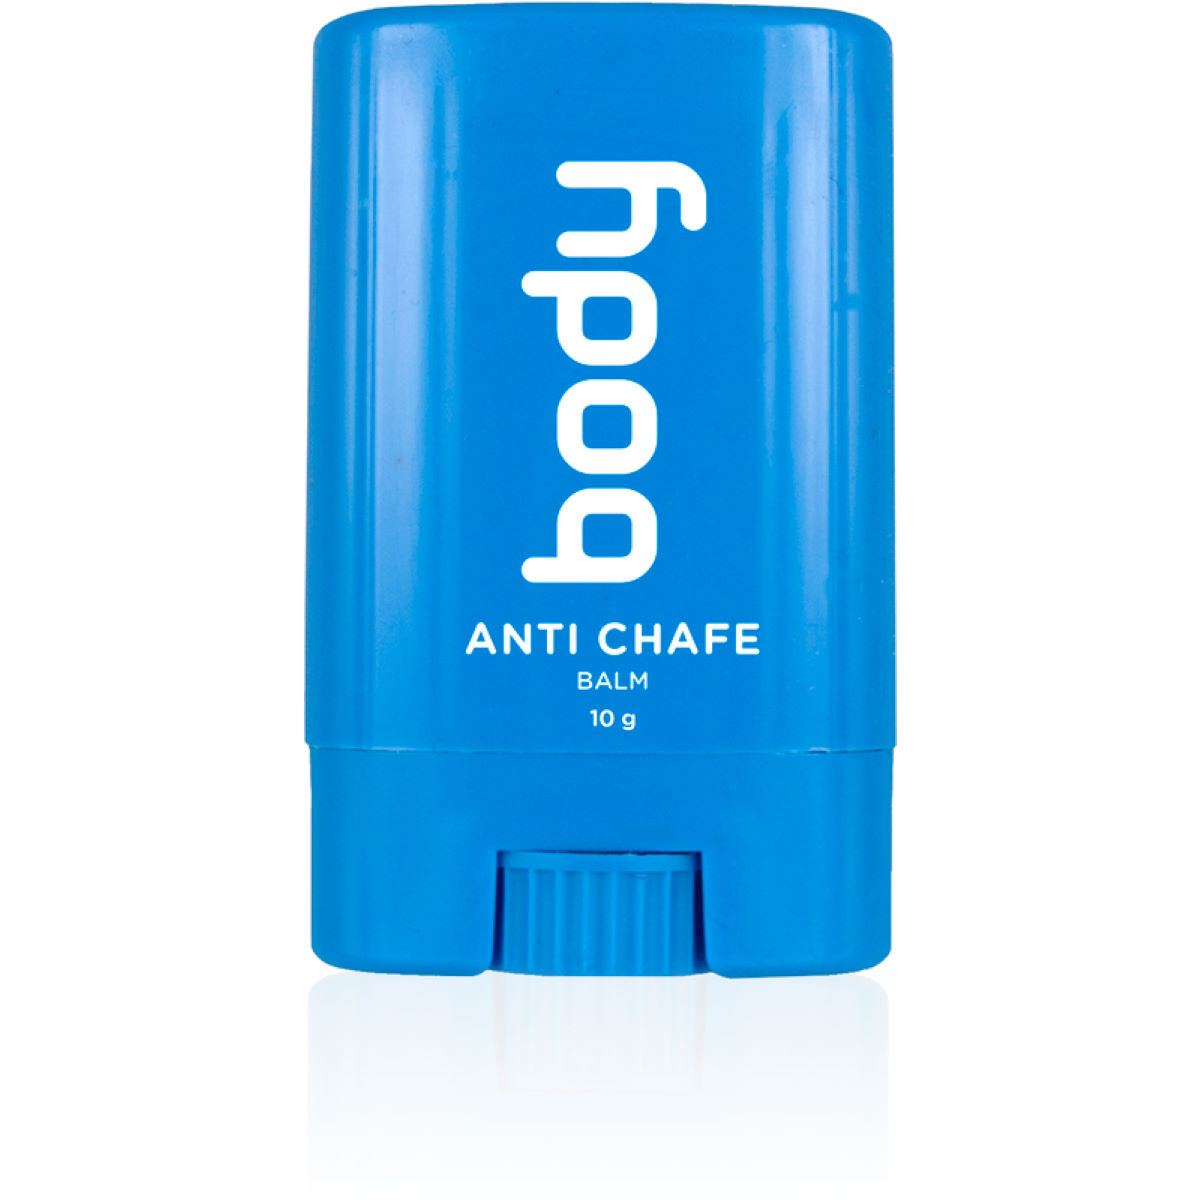 Bodyglide Bodyglide Anti-chafing balm (10g)   Chafing Solutions